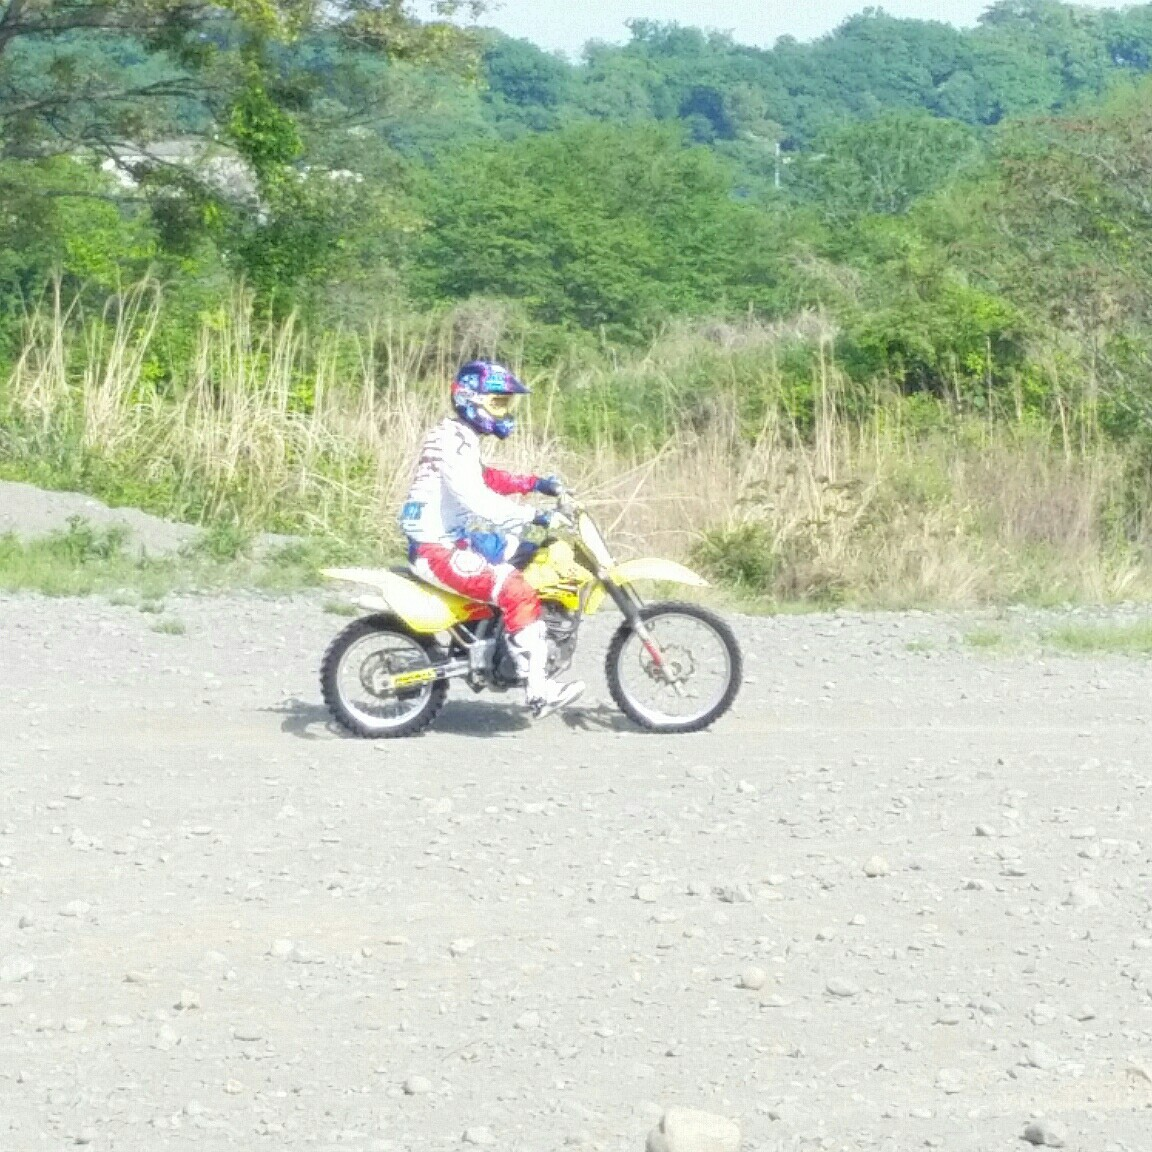 f:id:bike-camera:20170503200909j:image